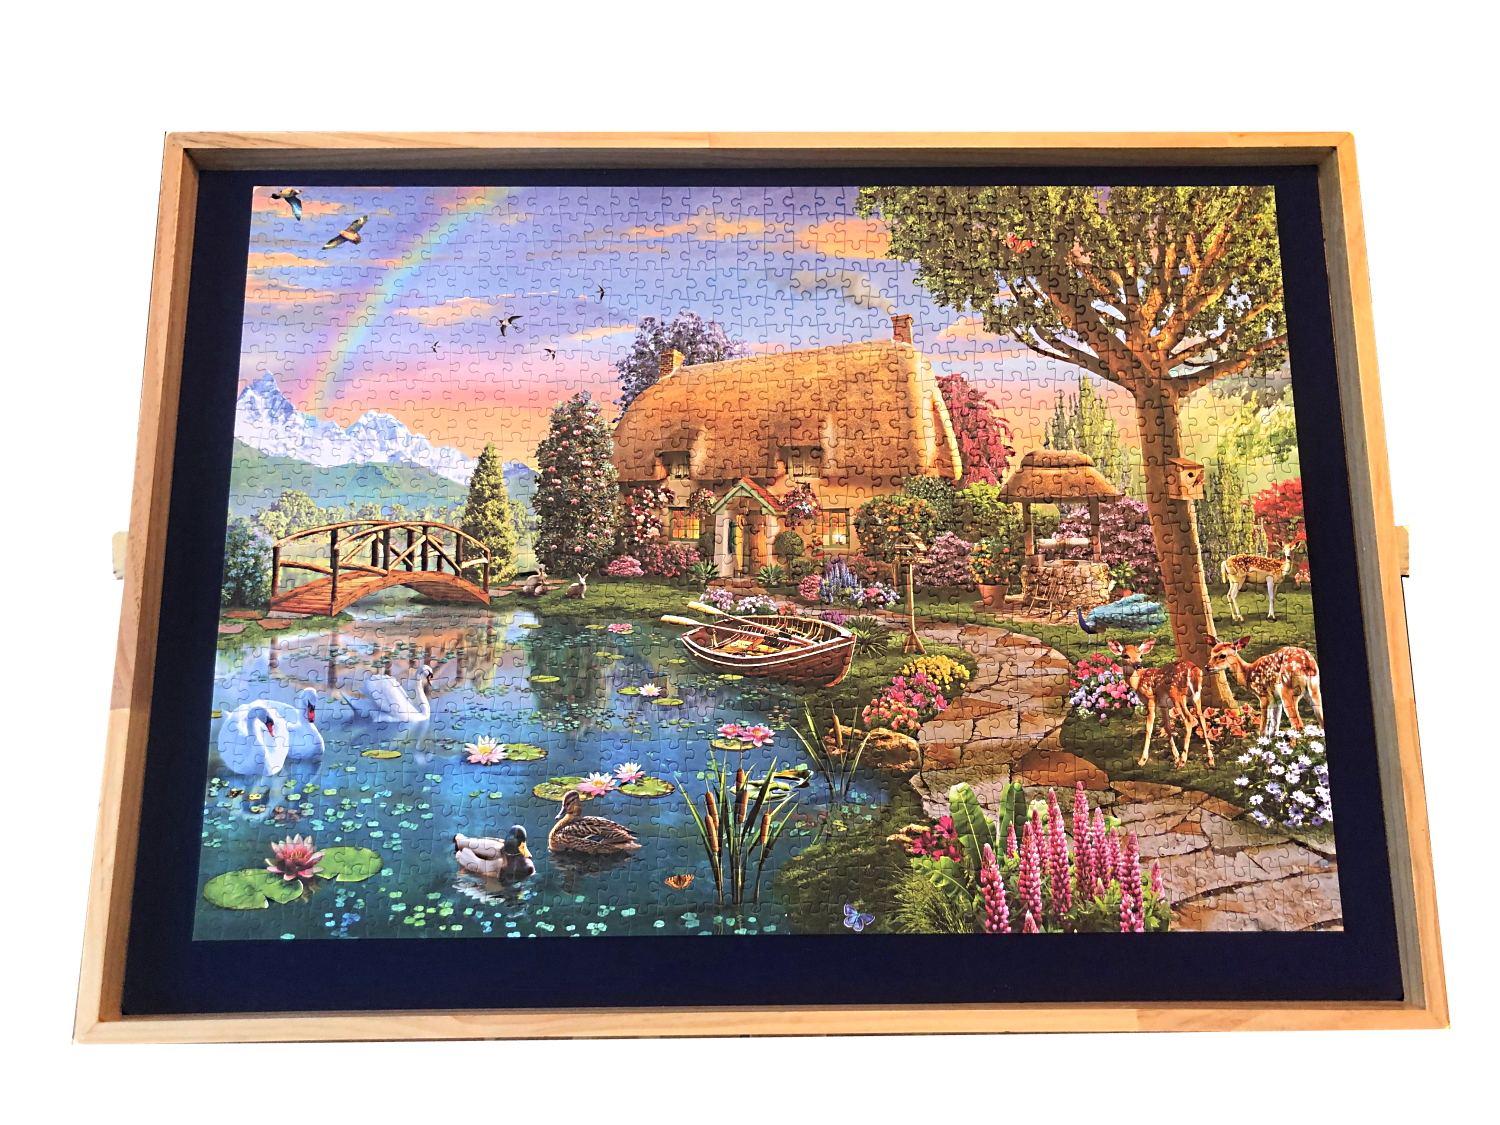 http://data.my-puzzle.fr/jig-and-puz.185/jig-puz-puzzle-table-100-a-1500-pieces.83071-4.fs.jpg